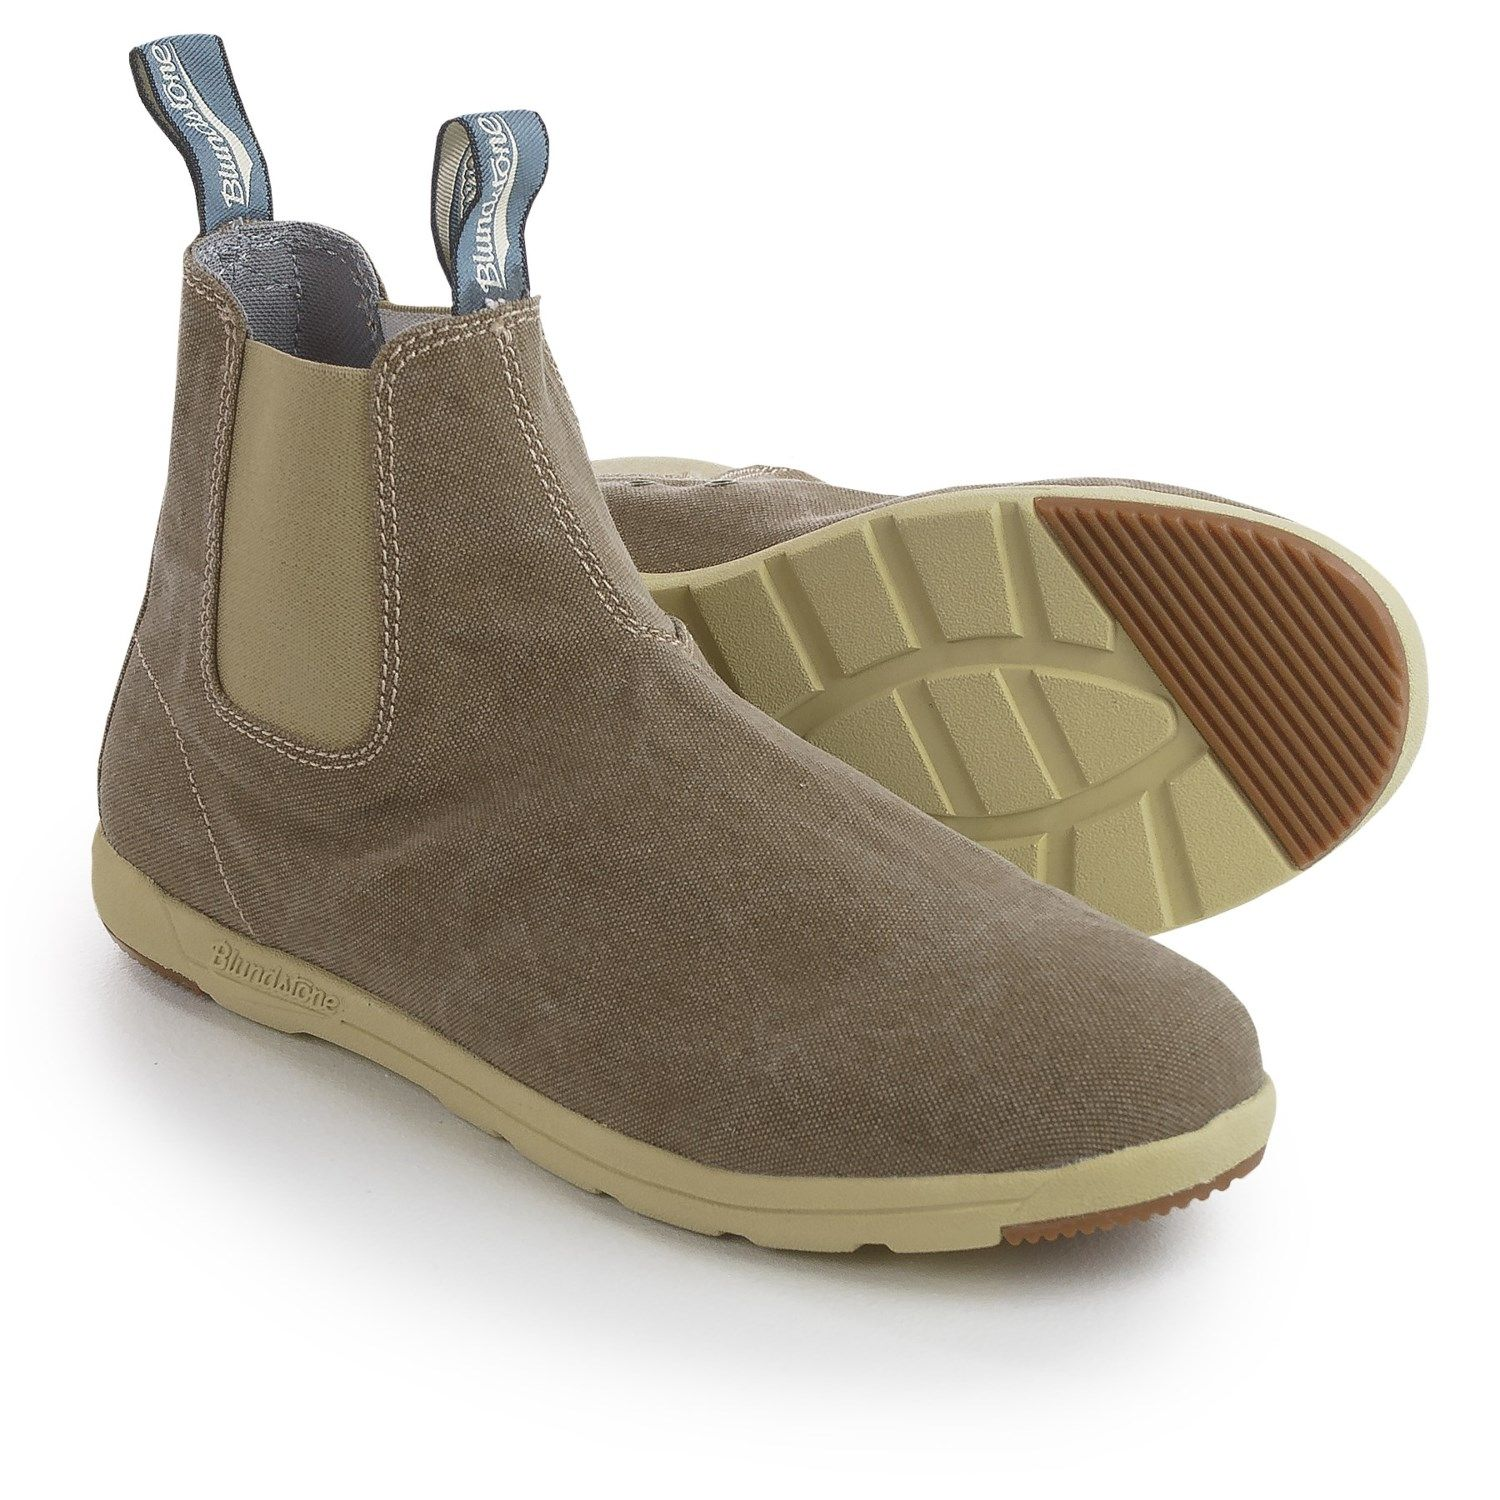 Blundstone Canvas Chelsea Boots